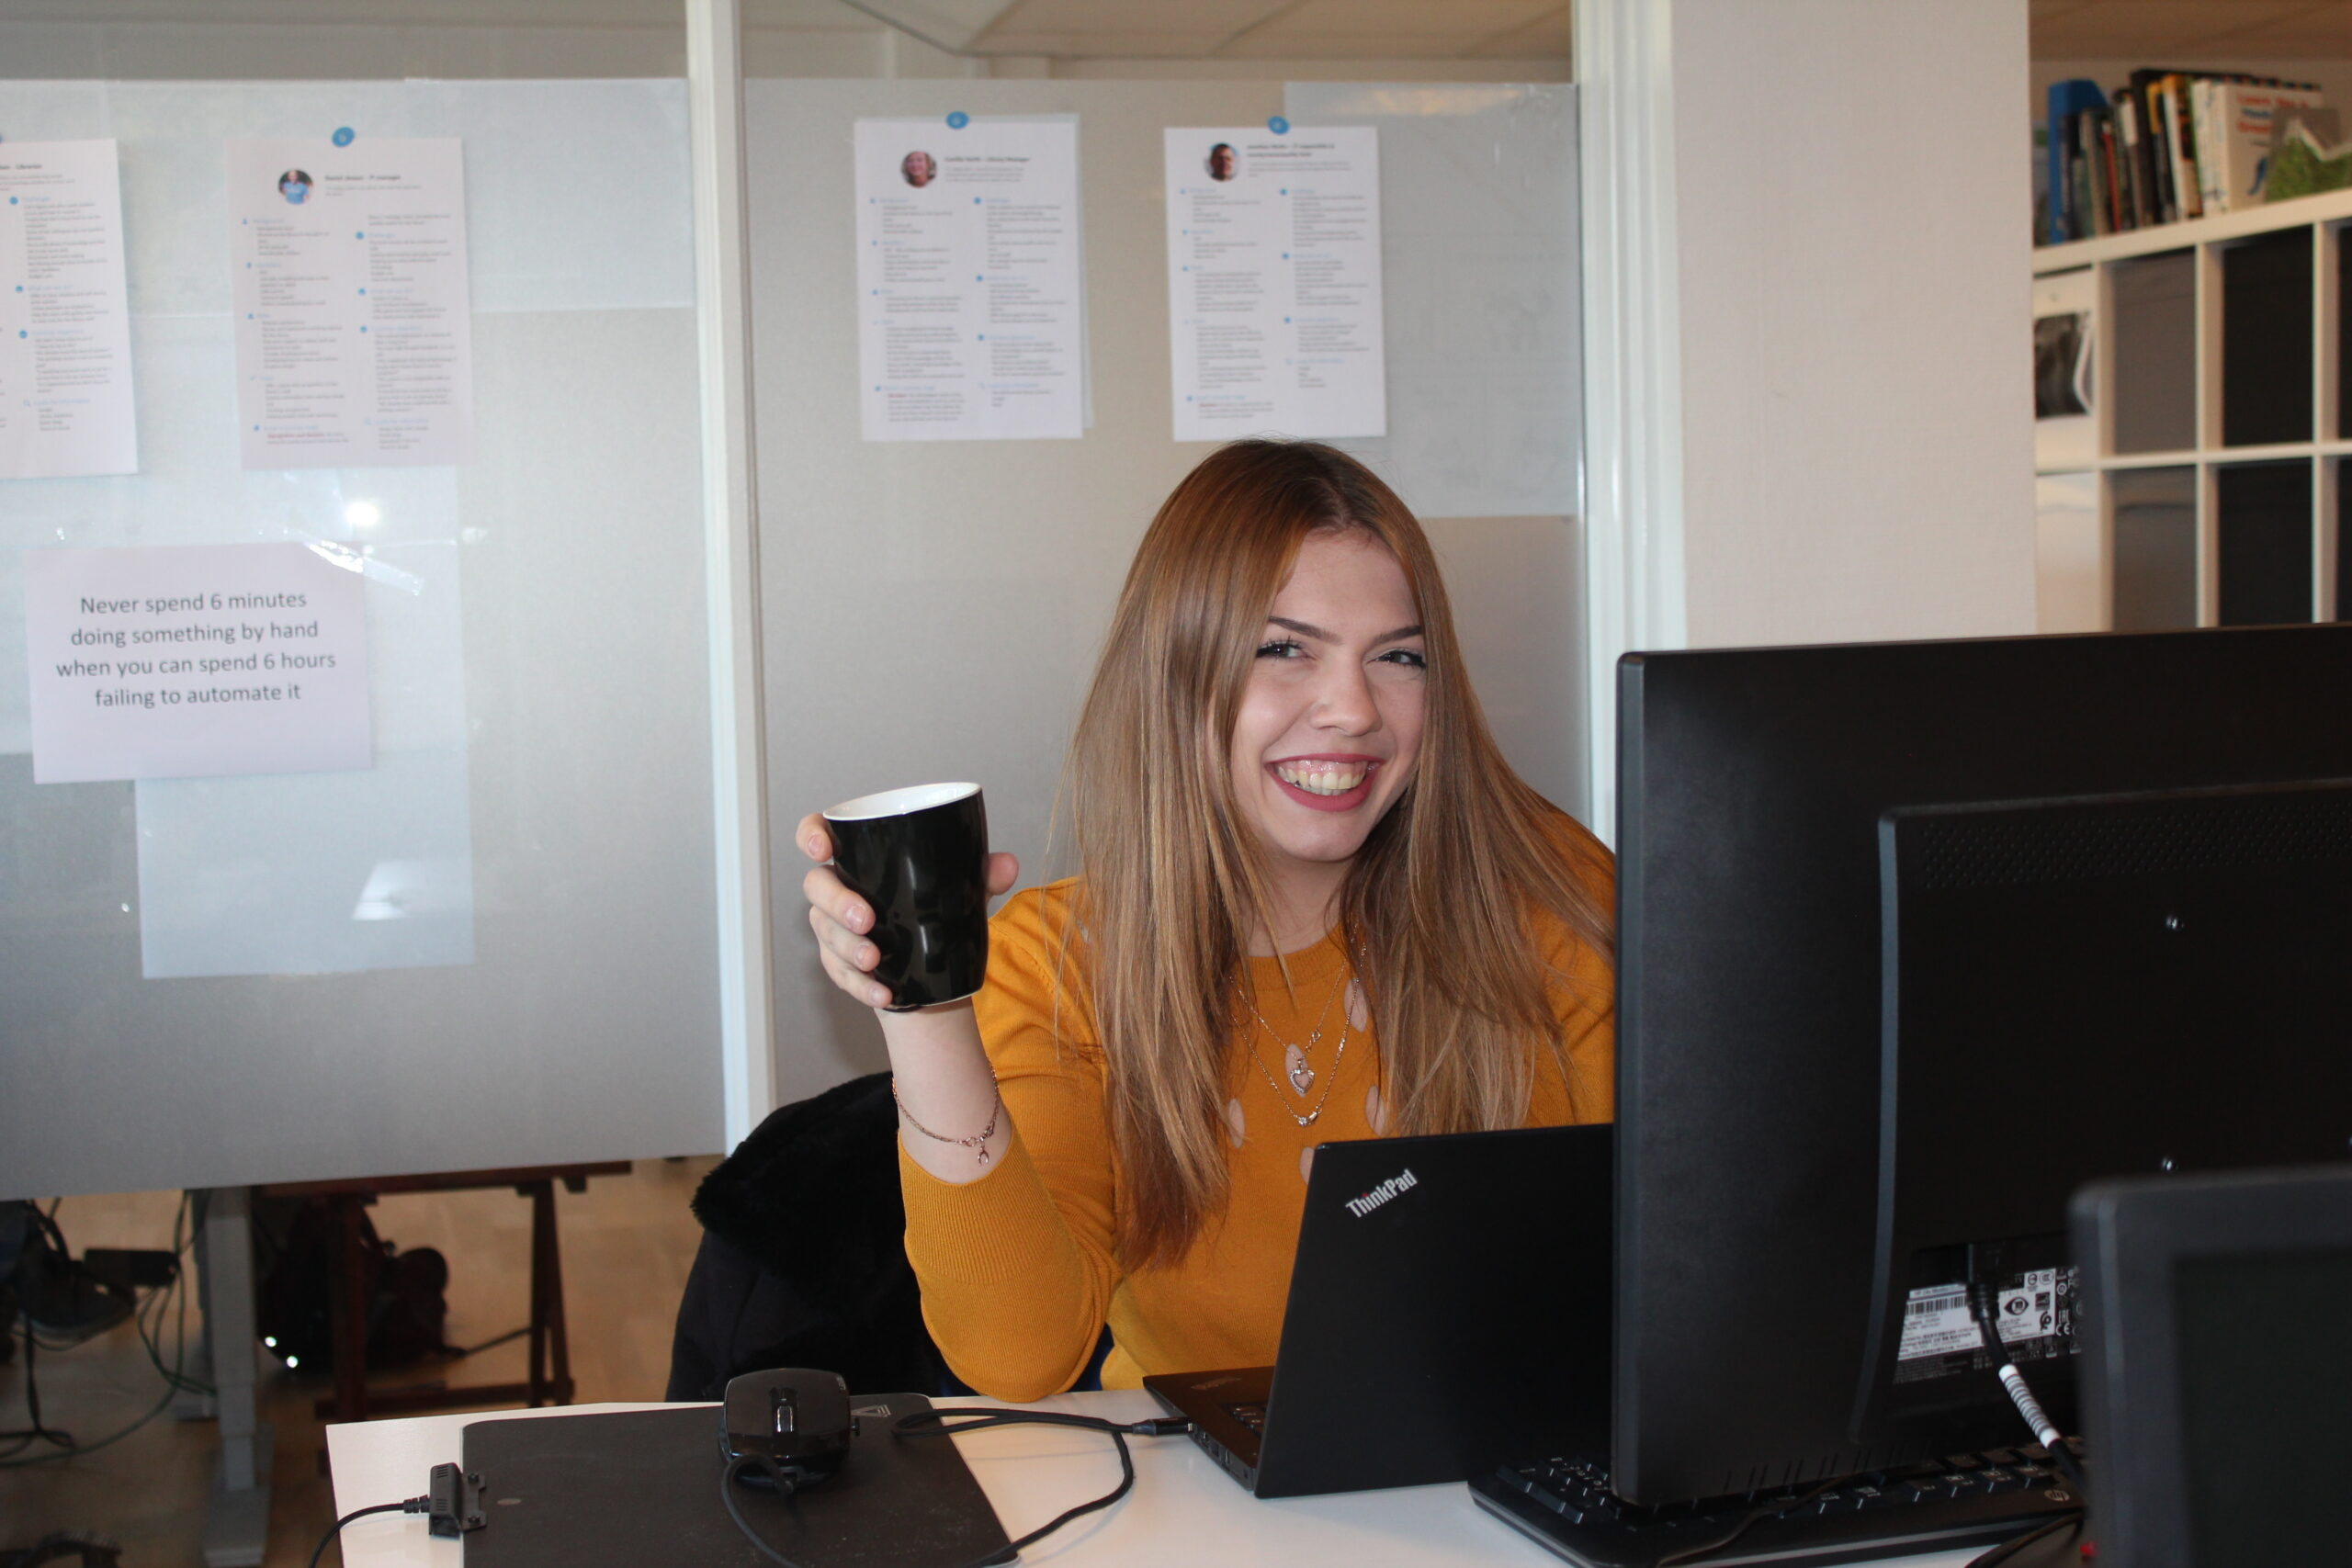 Daniela And Her Coffee Smile